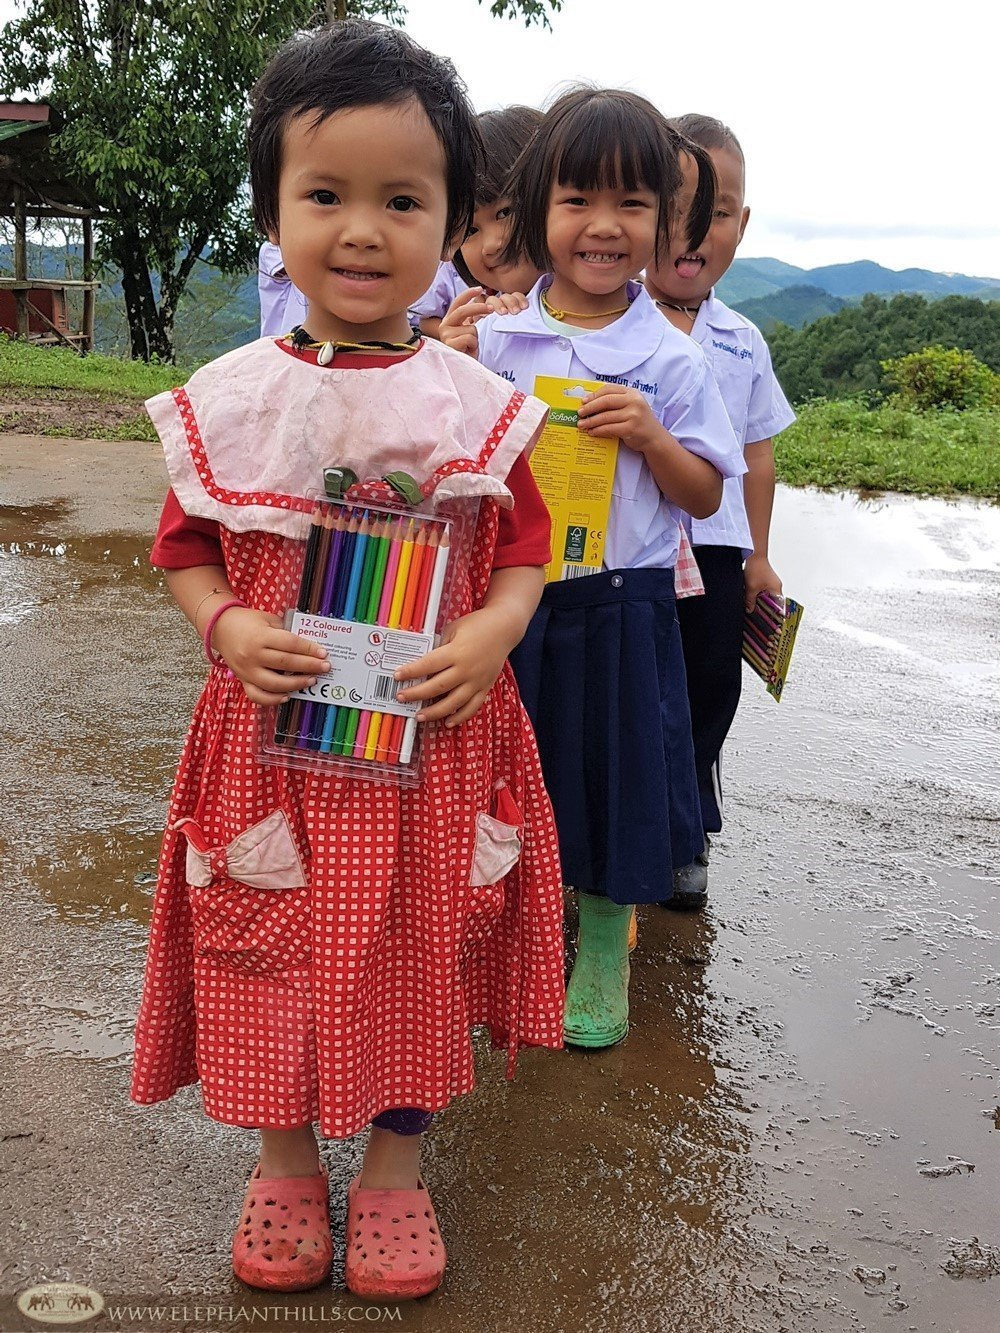 Elephant Hills - Helping schools in Mae Hong Son